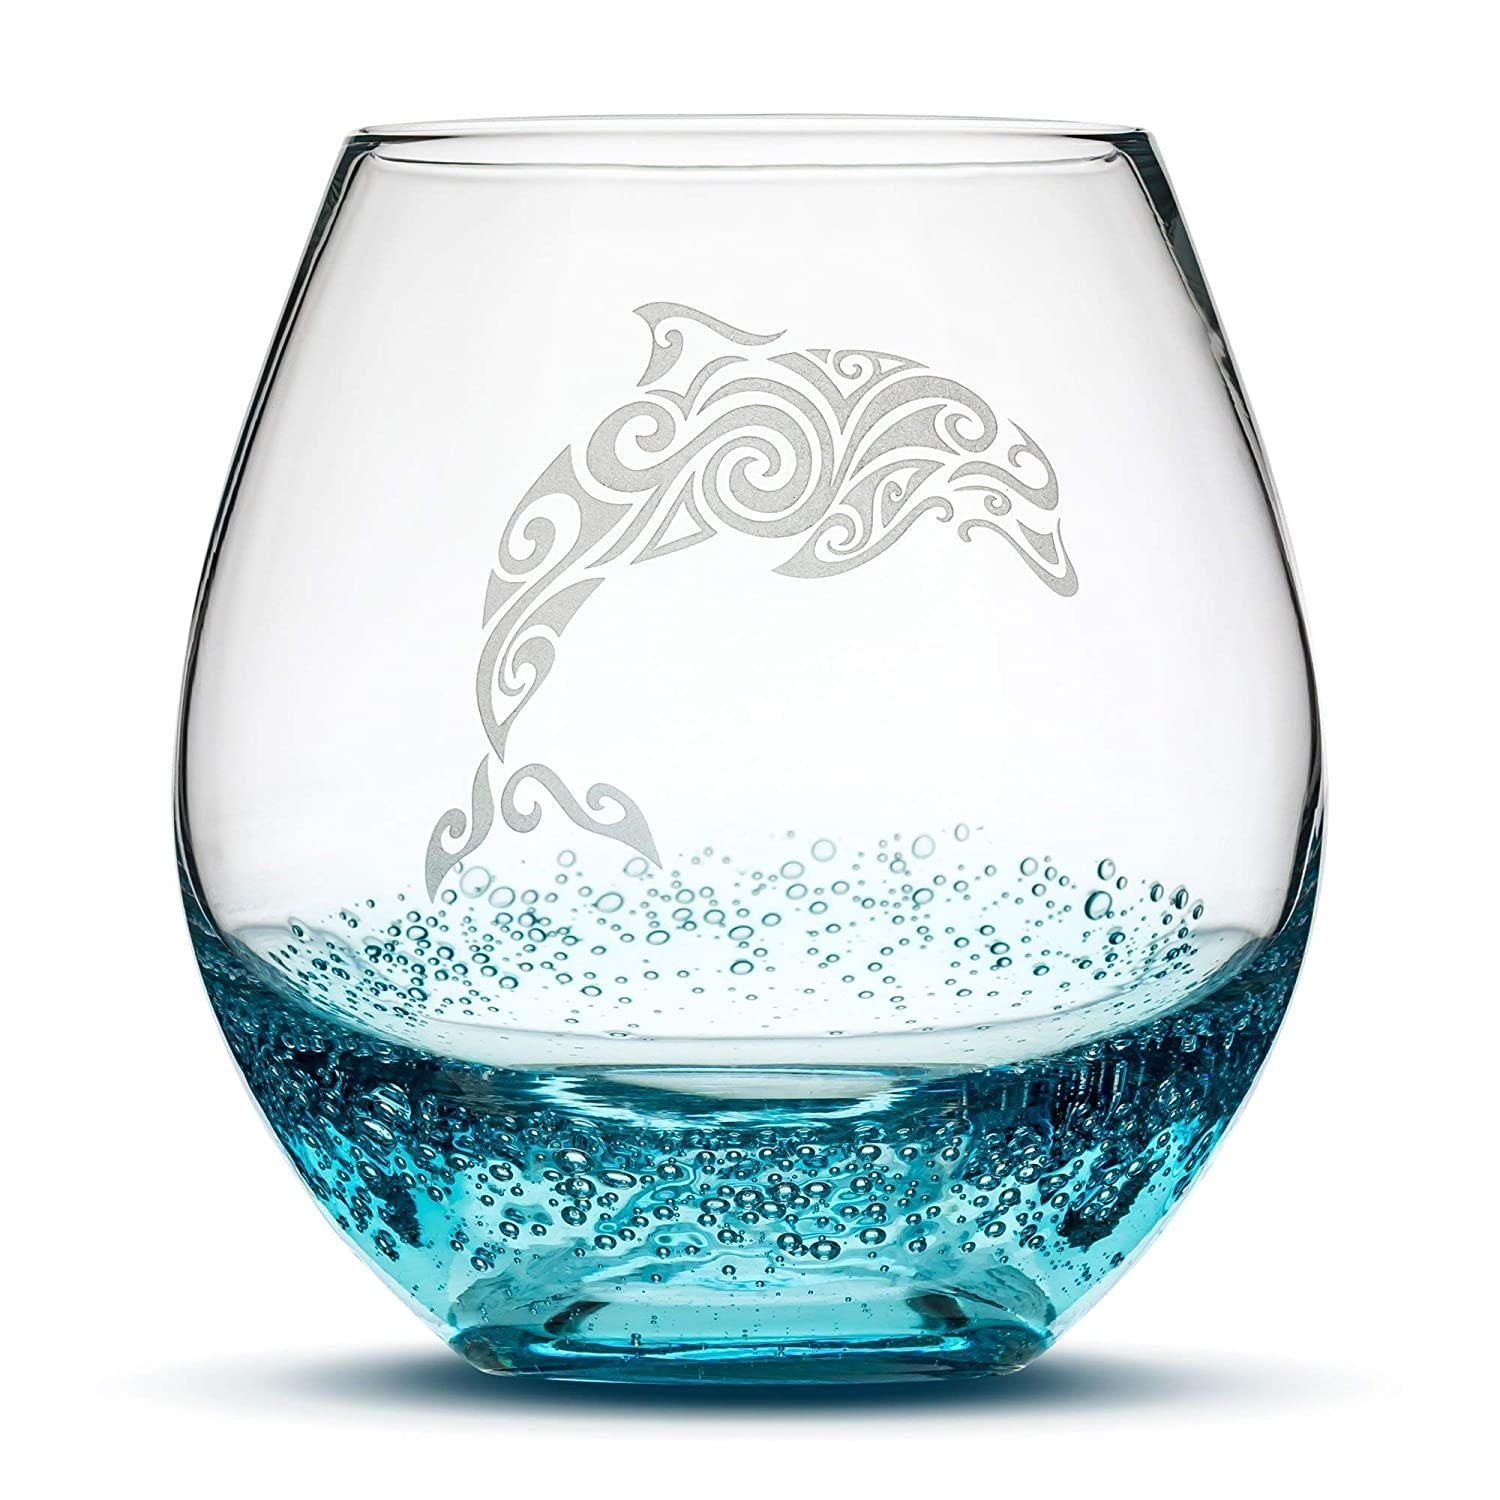 Integrity Bottles Dolphin Stemless Wine Glass, Bubbly Turquoise, Handblown, Tribal Design, Hand Etched Gifts, Sand Carved